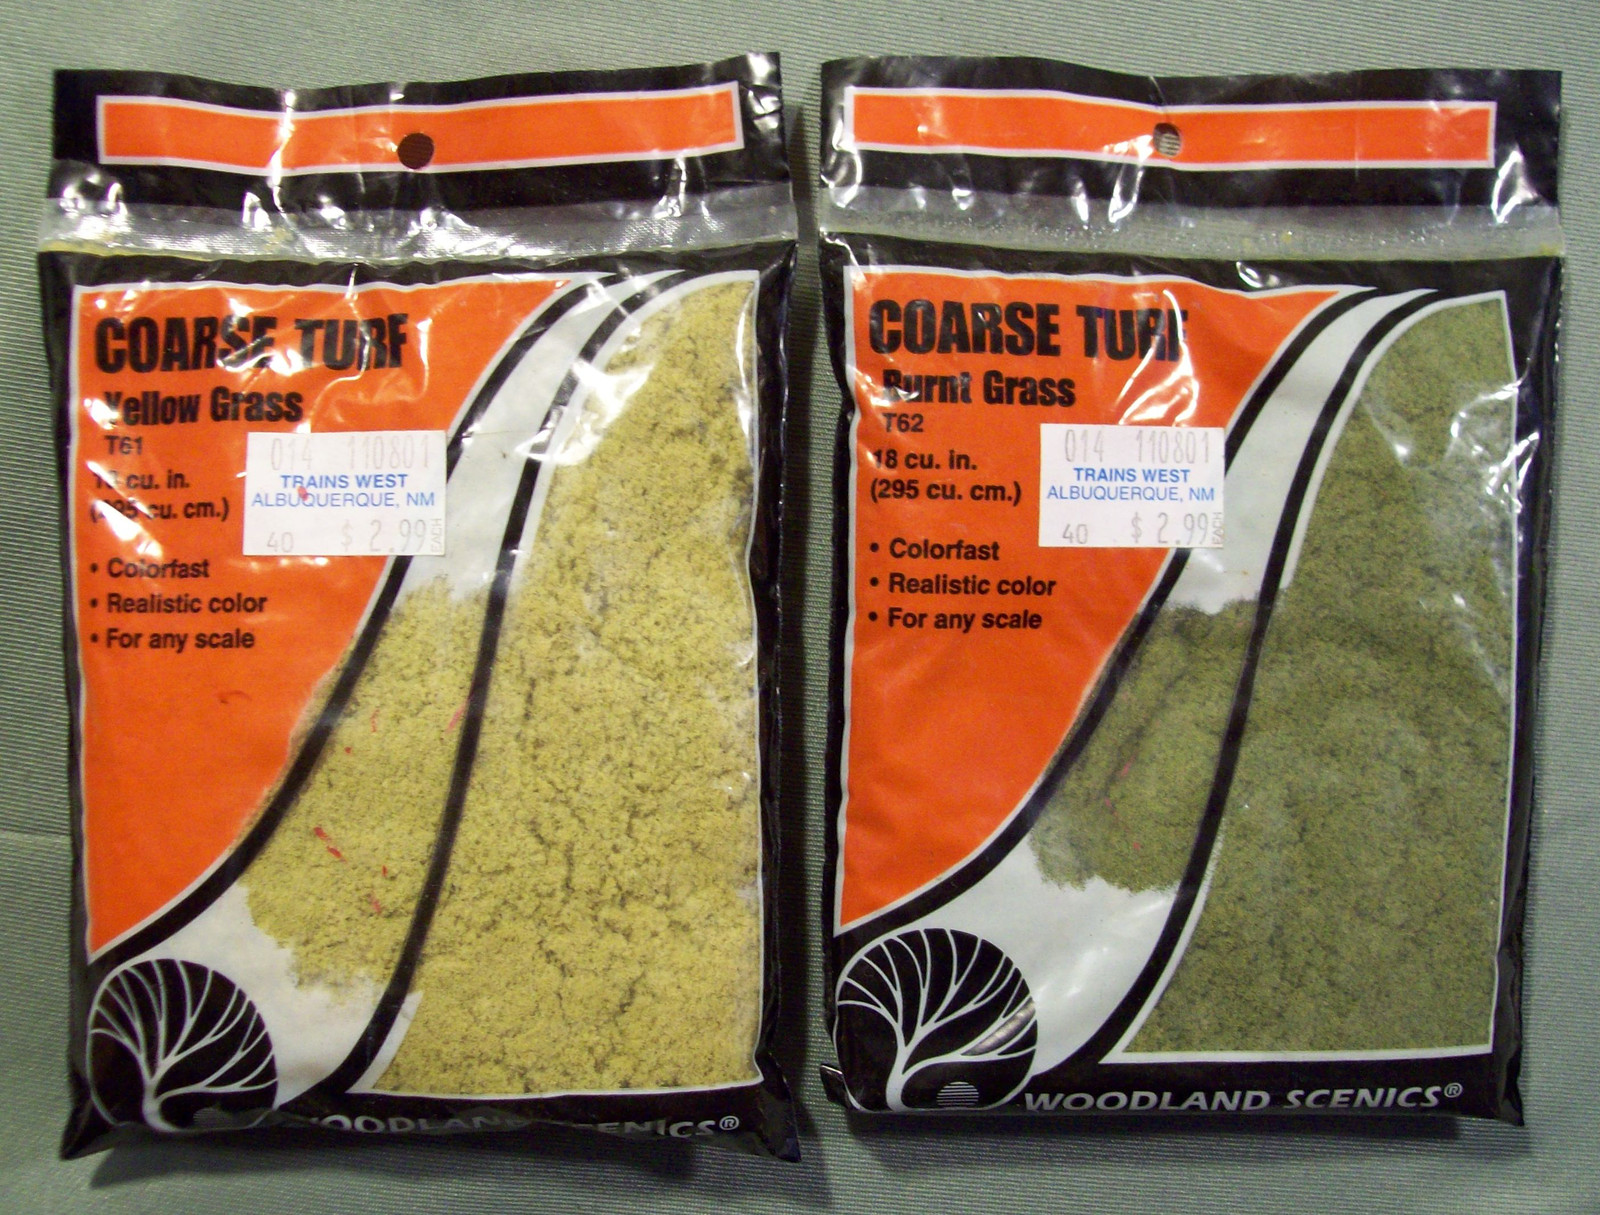 Primary image for 2 PACKS NOS WOODLAND SCENICS COARSE TURF - YELLOW GRASS T61 & BURNT GRASS T62